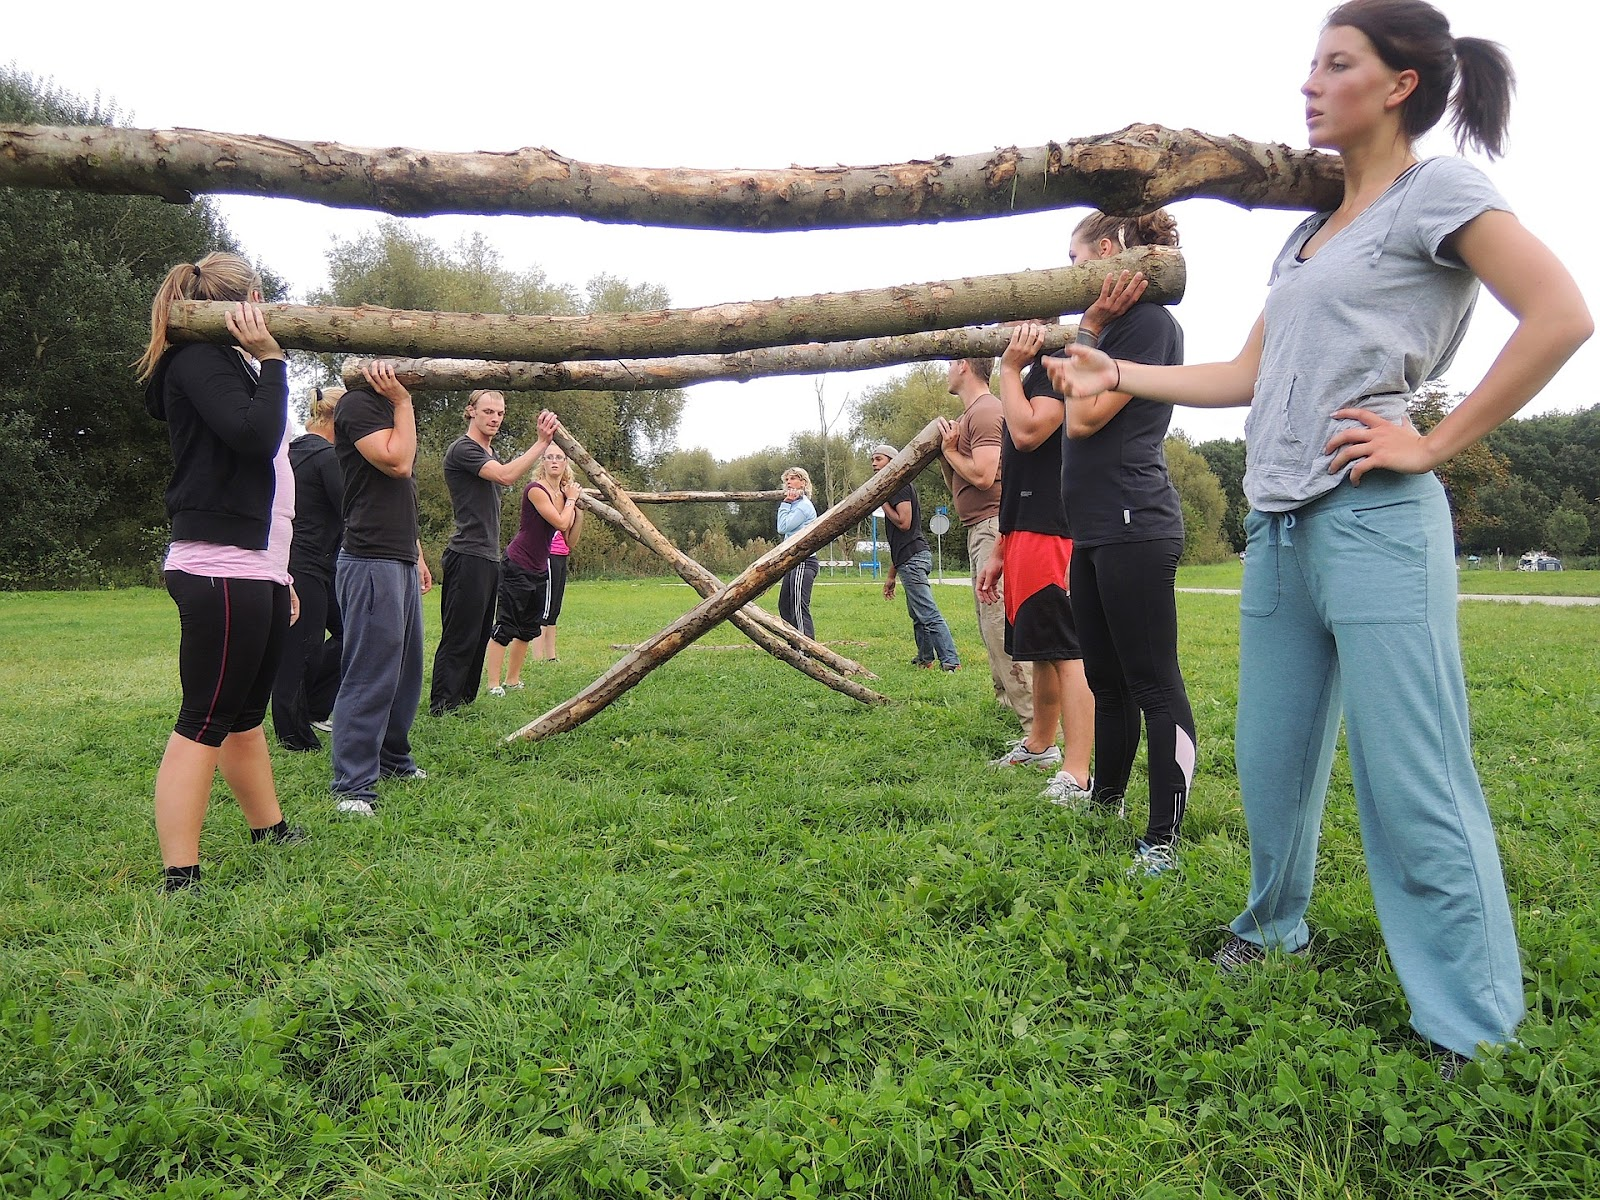 The Amazon Fitness Bootcamp | GoSweat | The 5 Best Bootcamps in South London